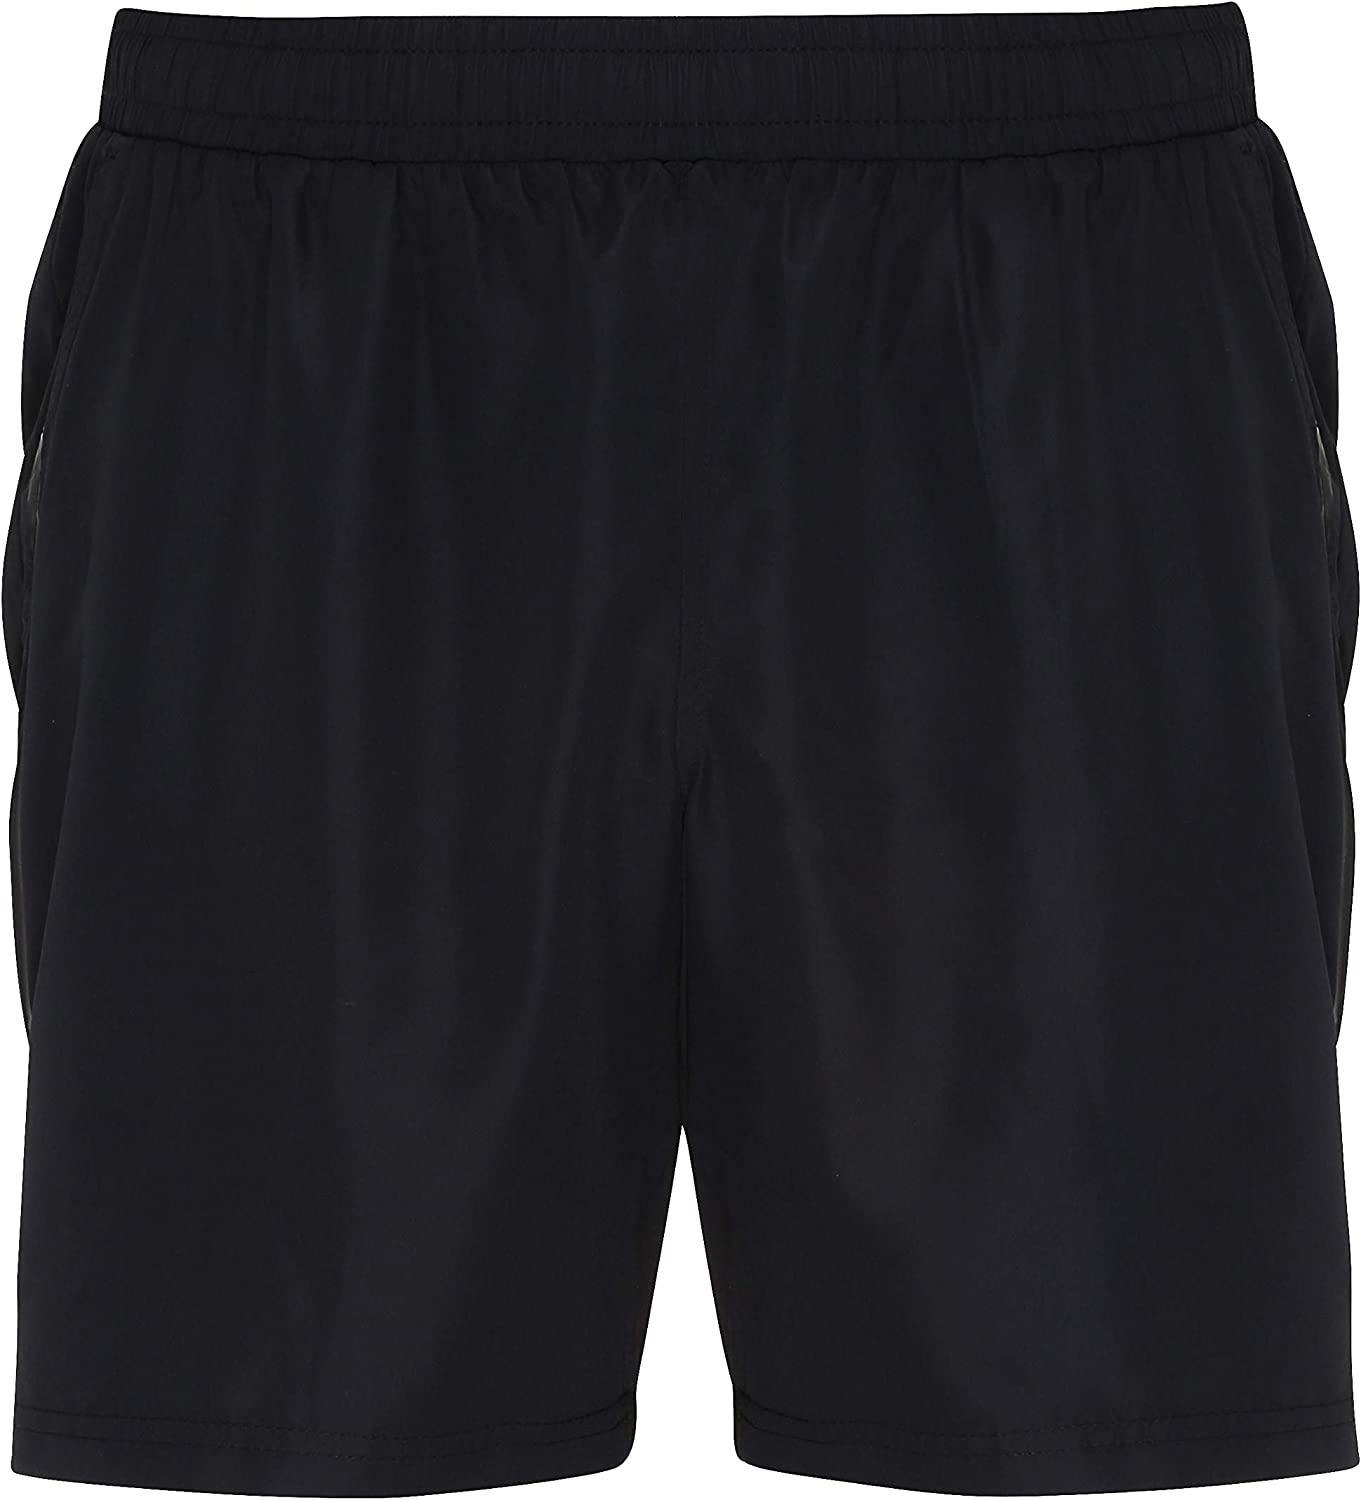 TriDri Mens Lightweight Training Shorts Black//S-2XL